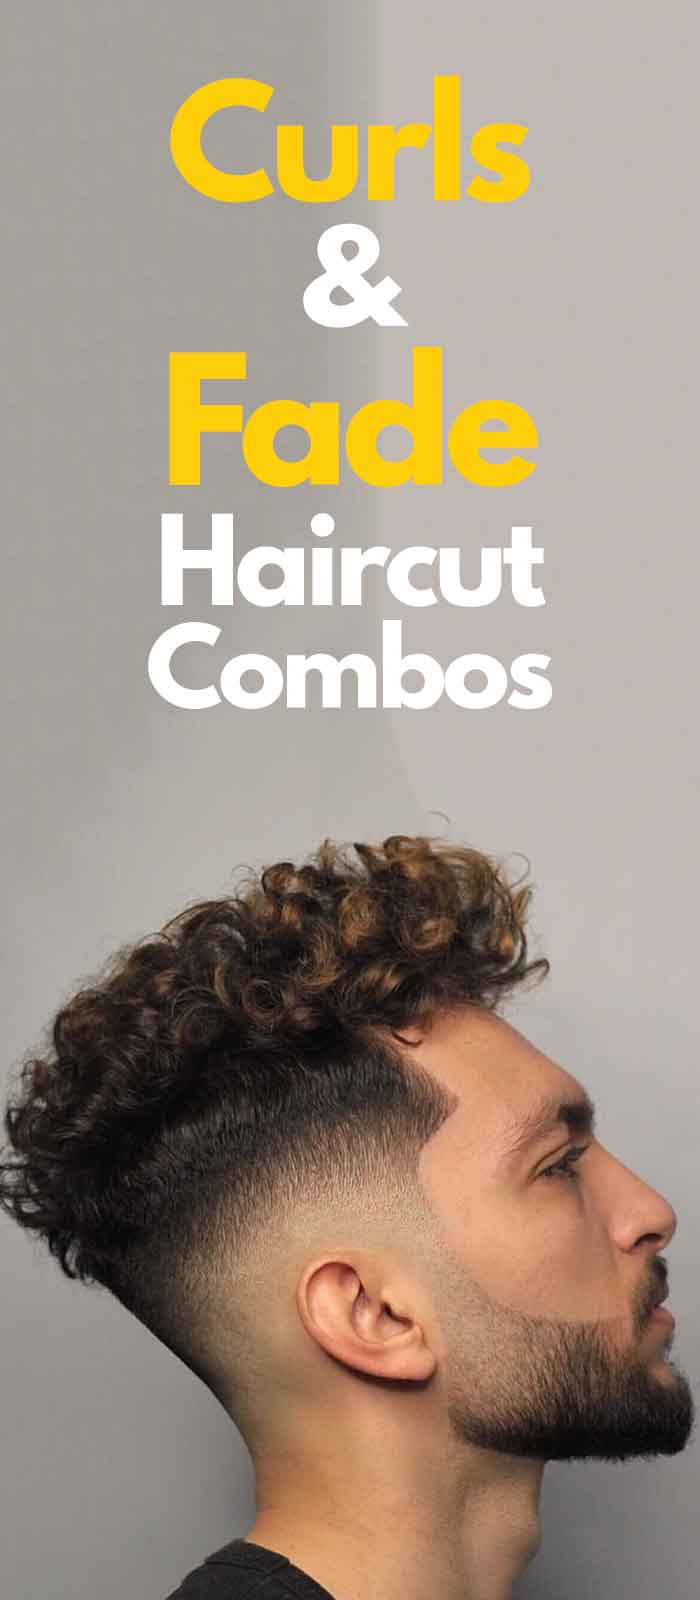 Curls And Fade Haircut Combo!